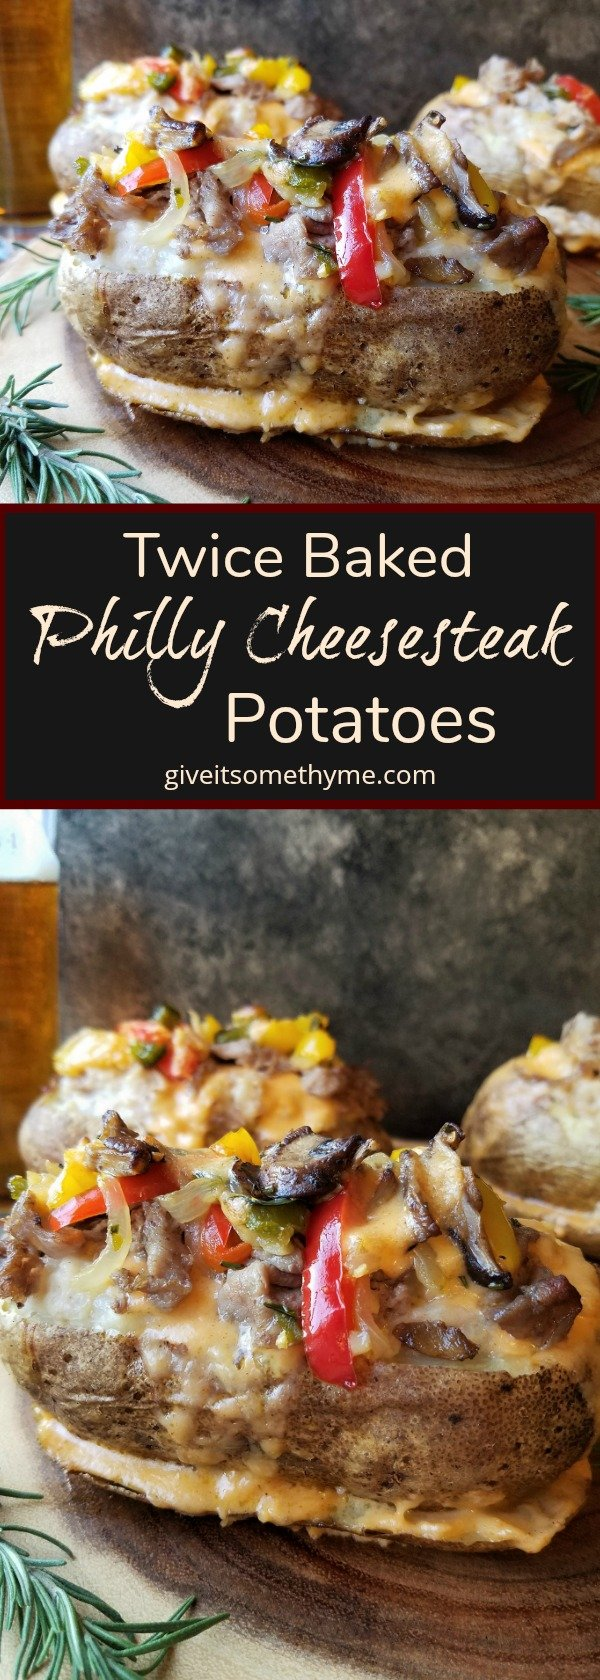 Philly Cheesesteak Potatoes with Homemade Whiz! - Give it Some Thyme